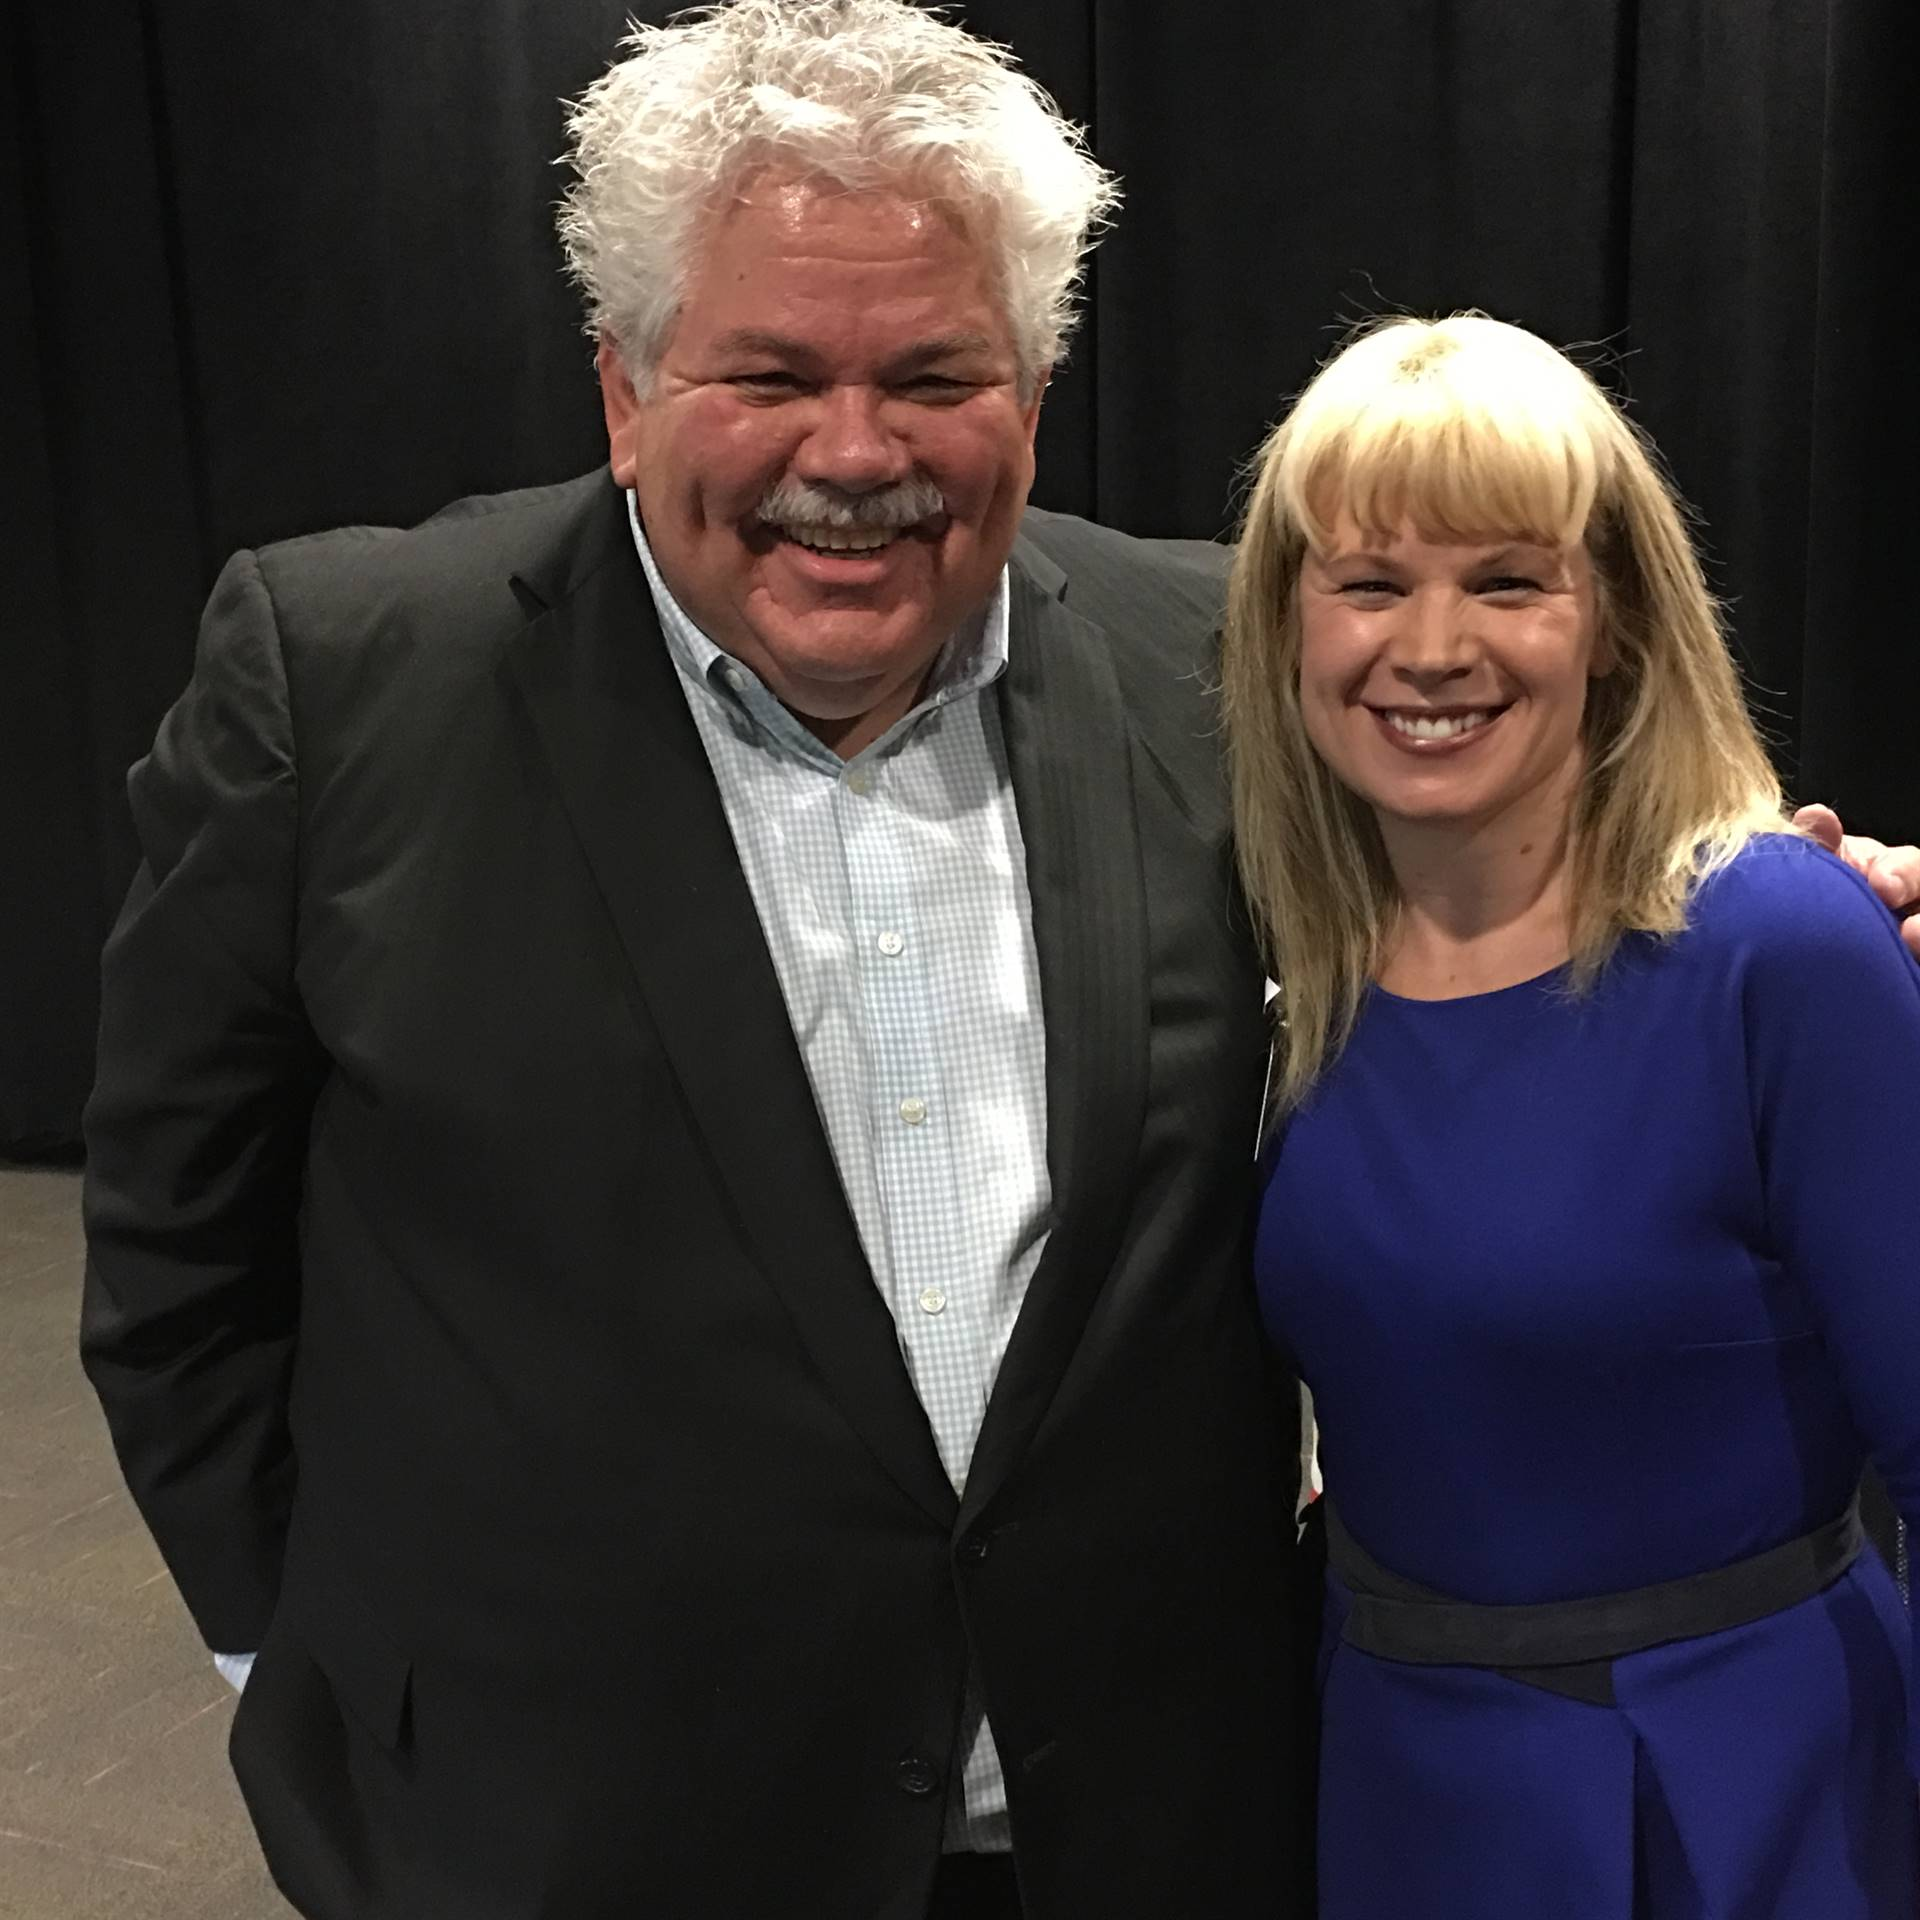 Rick Sebak and Mrs. Williams